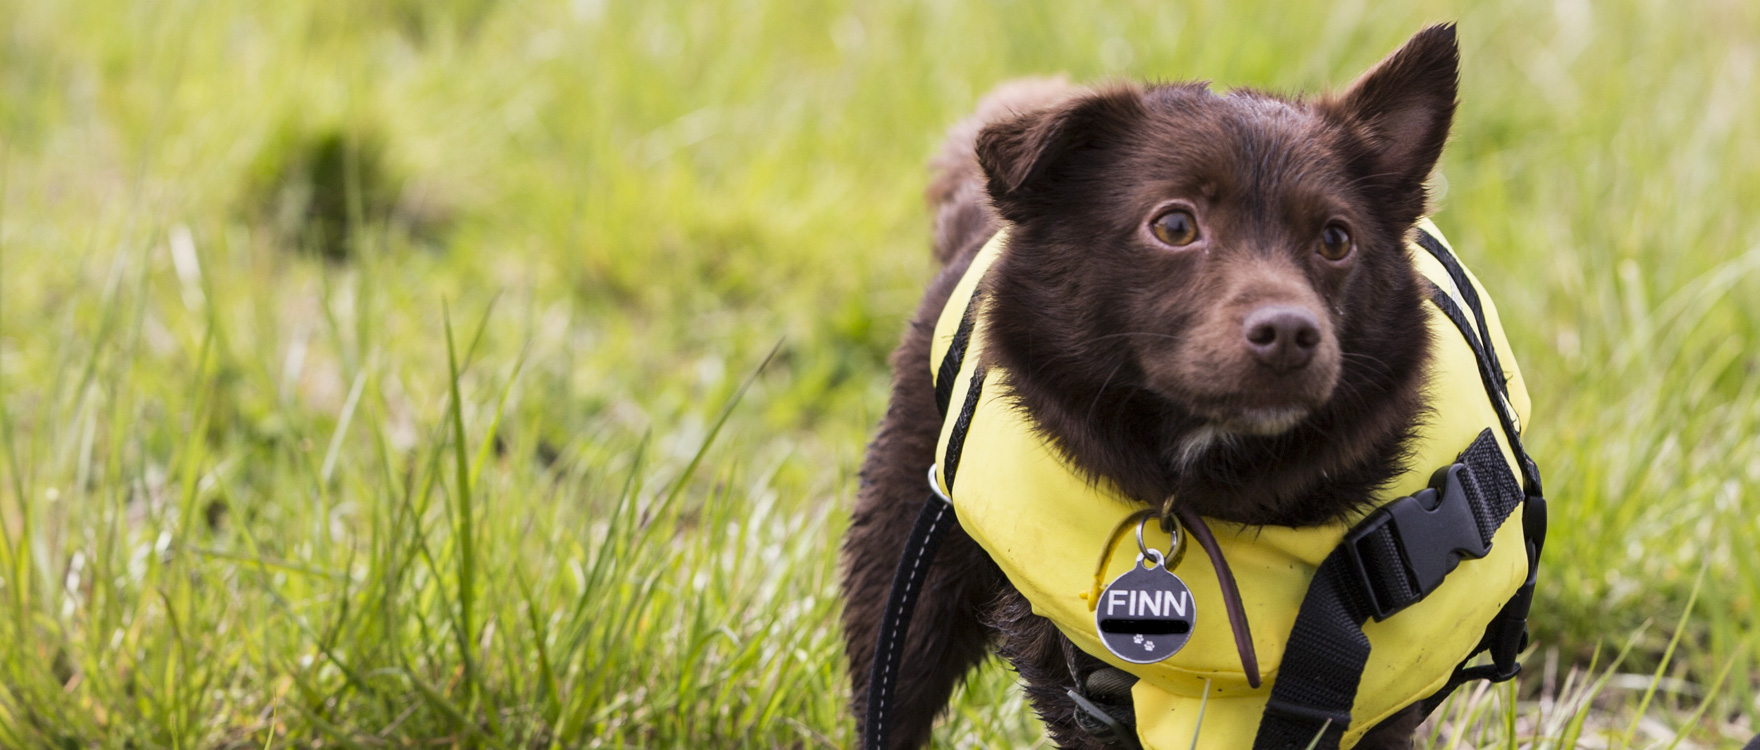 Finn the little dog is wearing his life jacket and he is ready for a swim